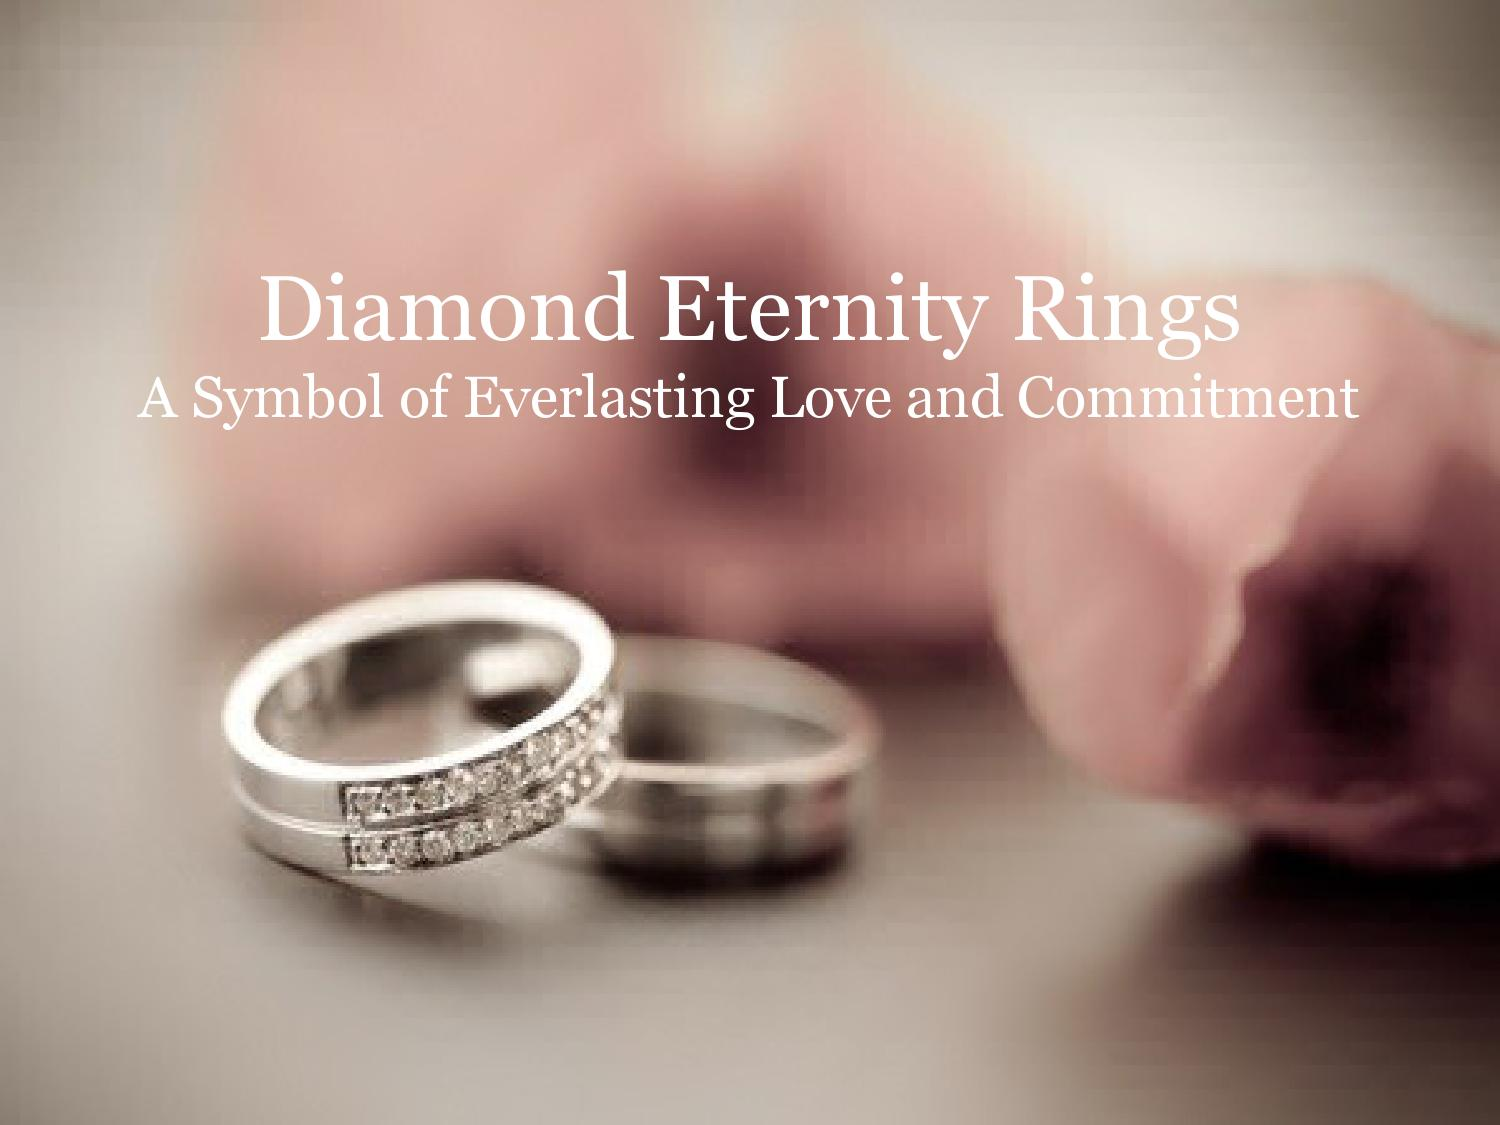 Diamond eternity rings by ag and sons by AG and Sons Ltd. - issuu